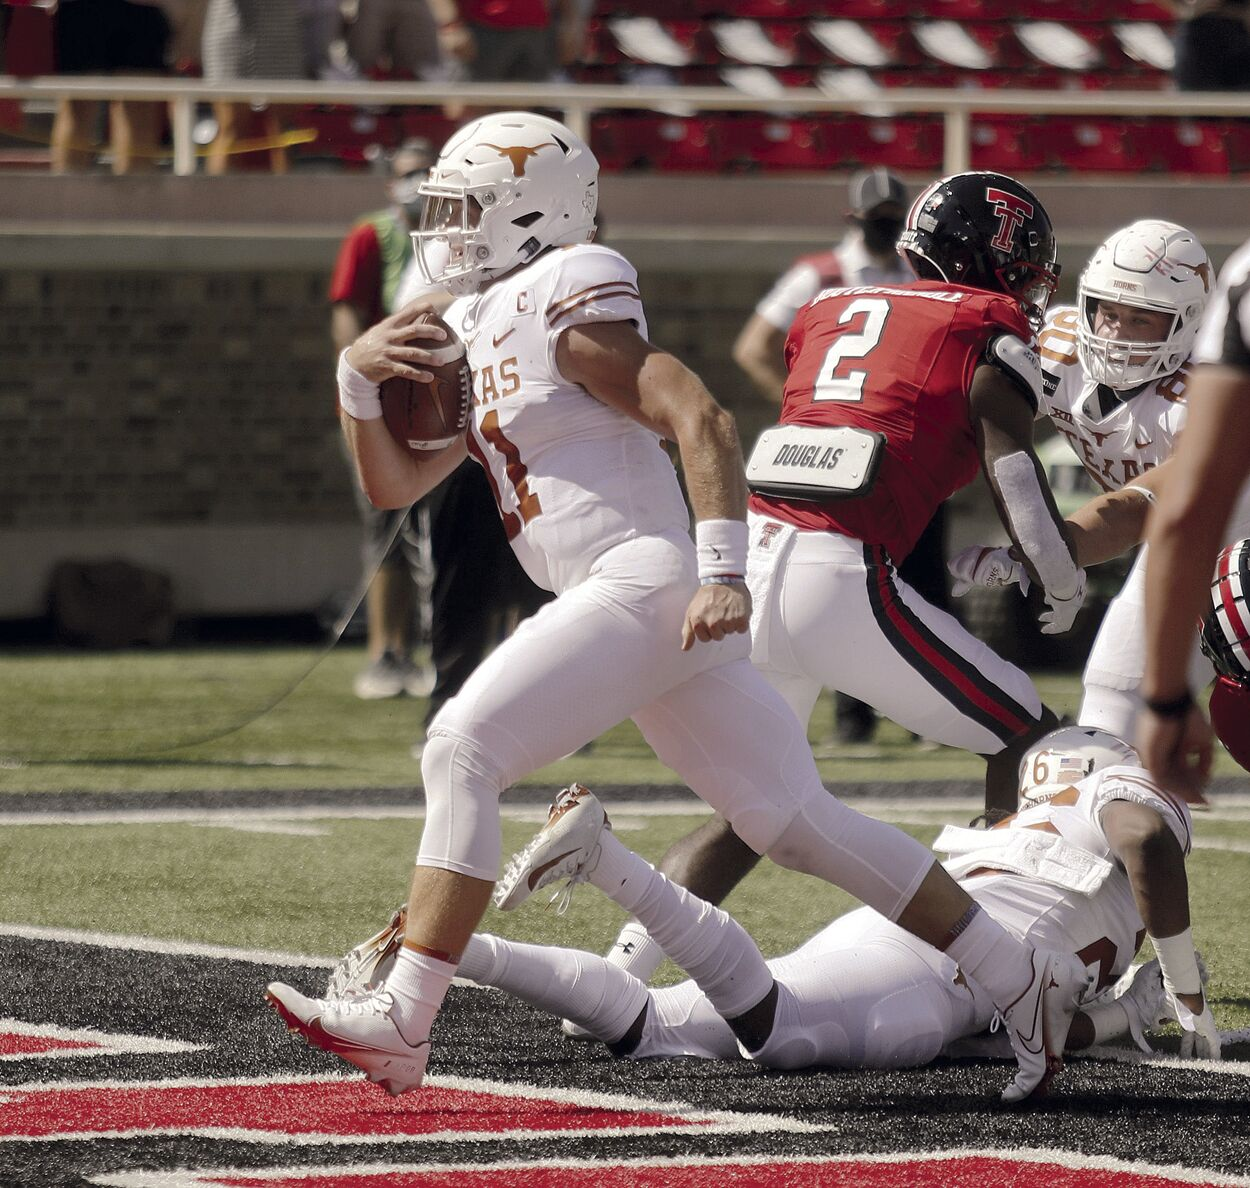 Texas rallies to beat Texas Tech in overtime of conference opener